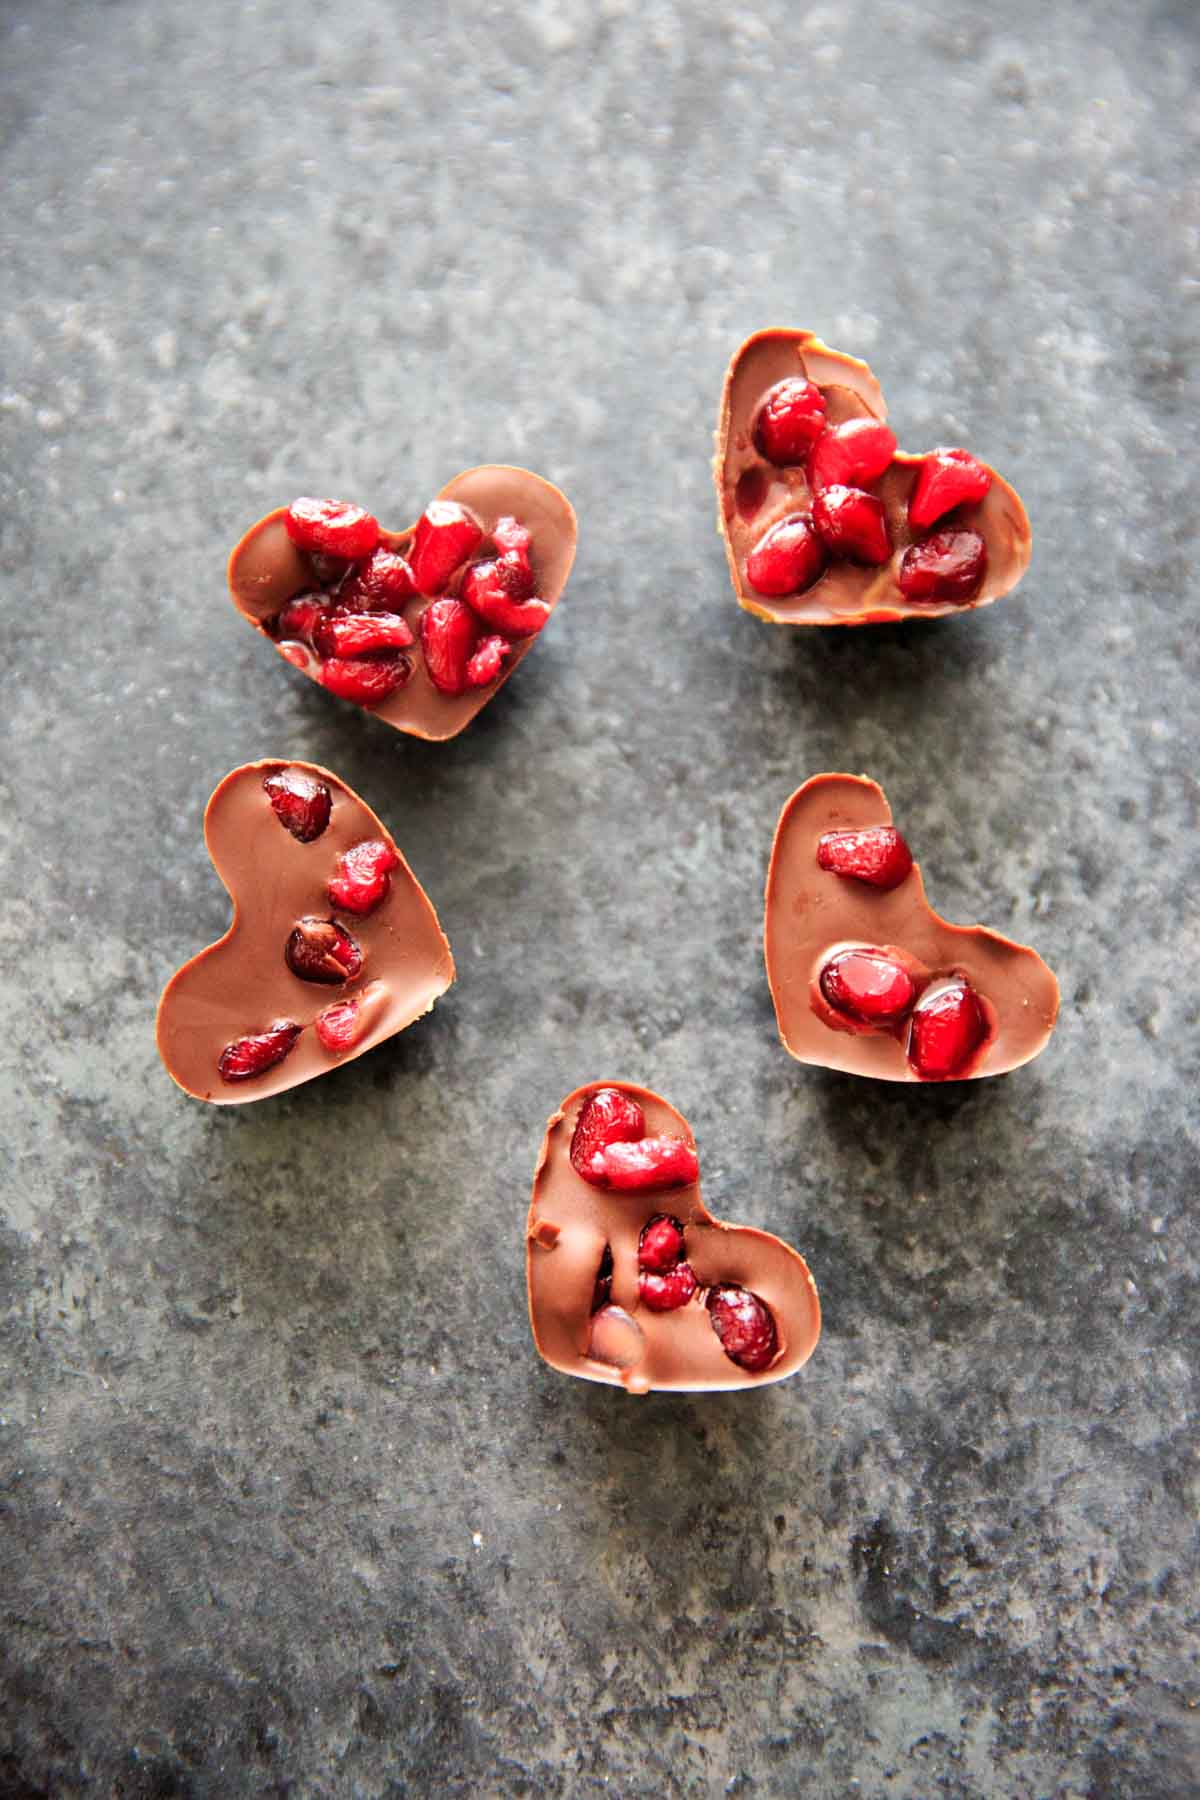 Chocolate Pomegranate Candy Recipe - chocolate pomegranate heart shaped candy bites